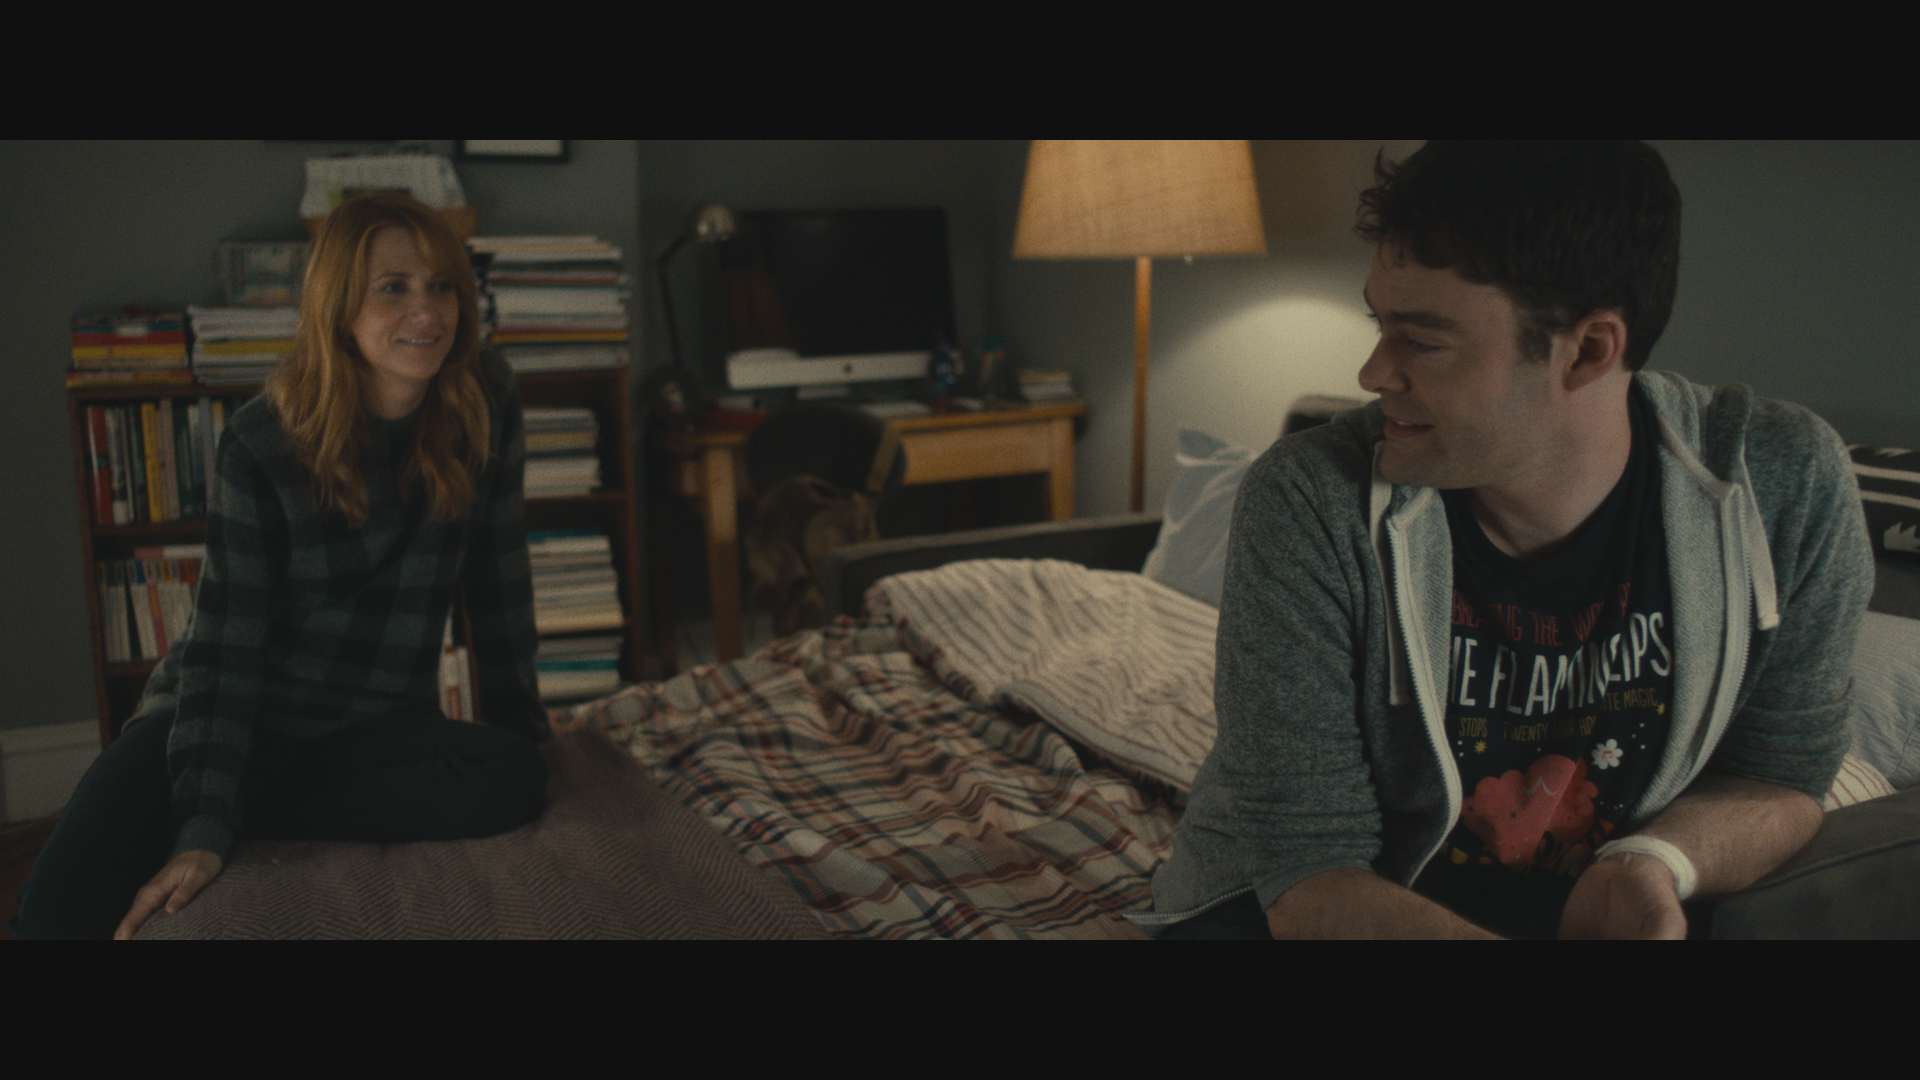 Bill Hader and Kristen Wiig in The Skeleton Twins (2014)